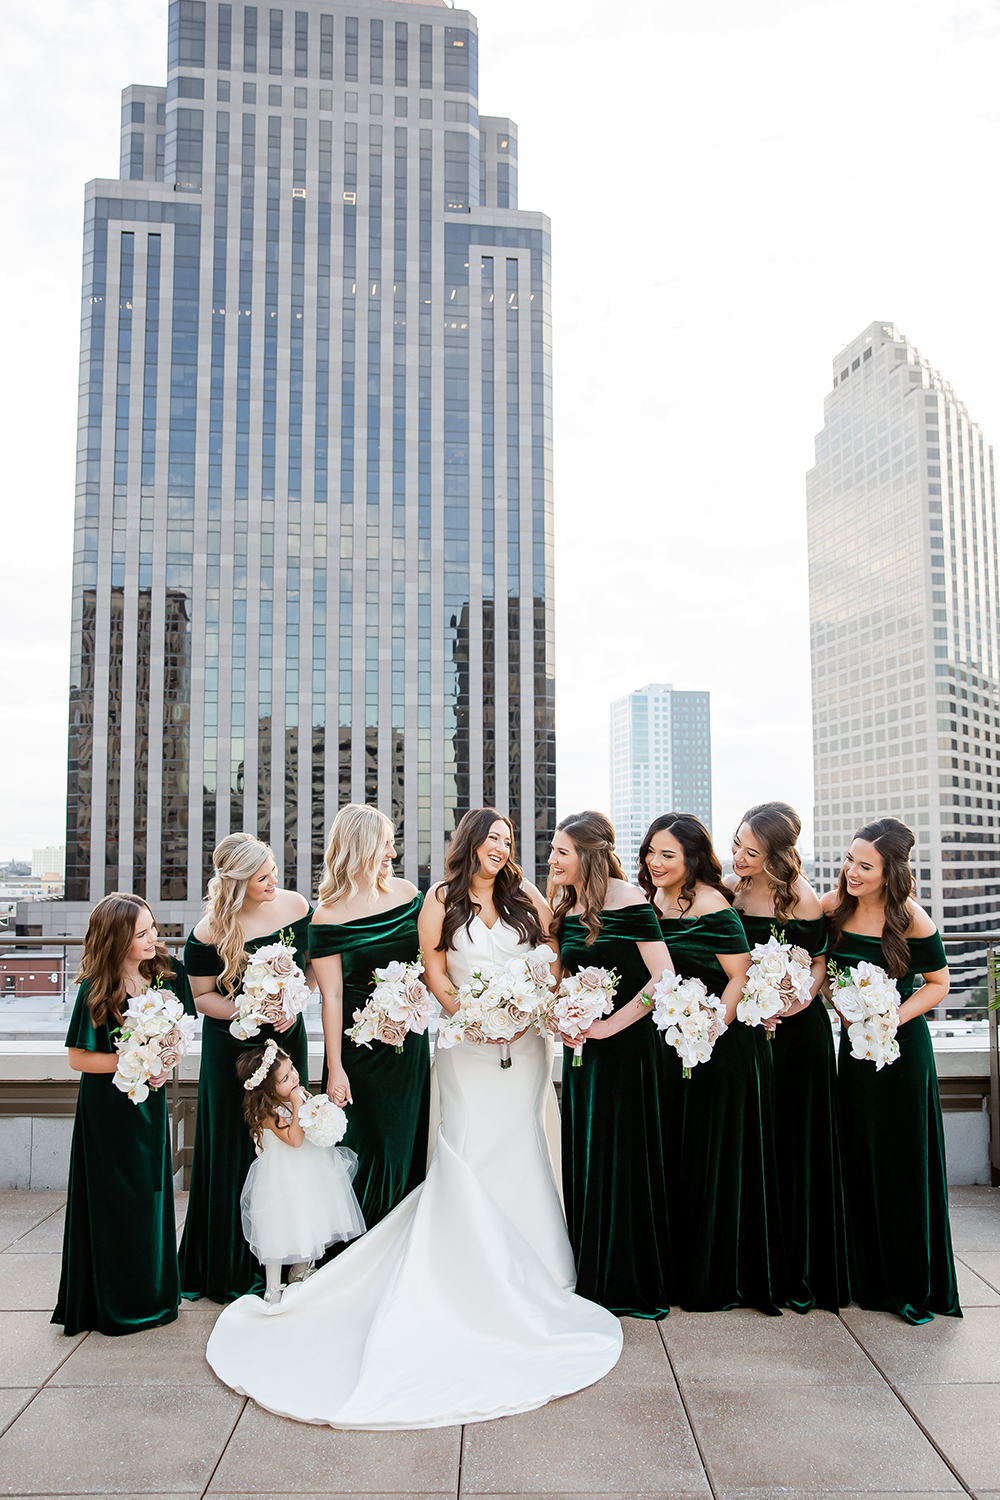 Kaylin and her bridesmaids on the rooftop of the NOPSI Hotel.